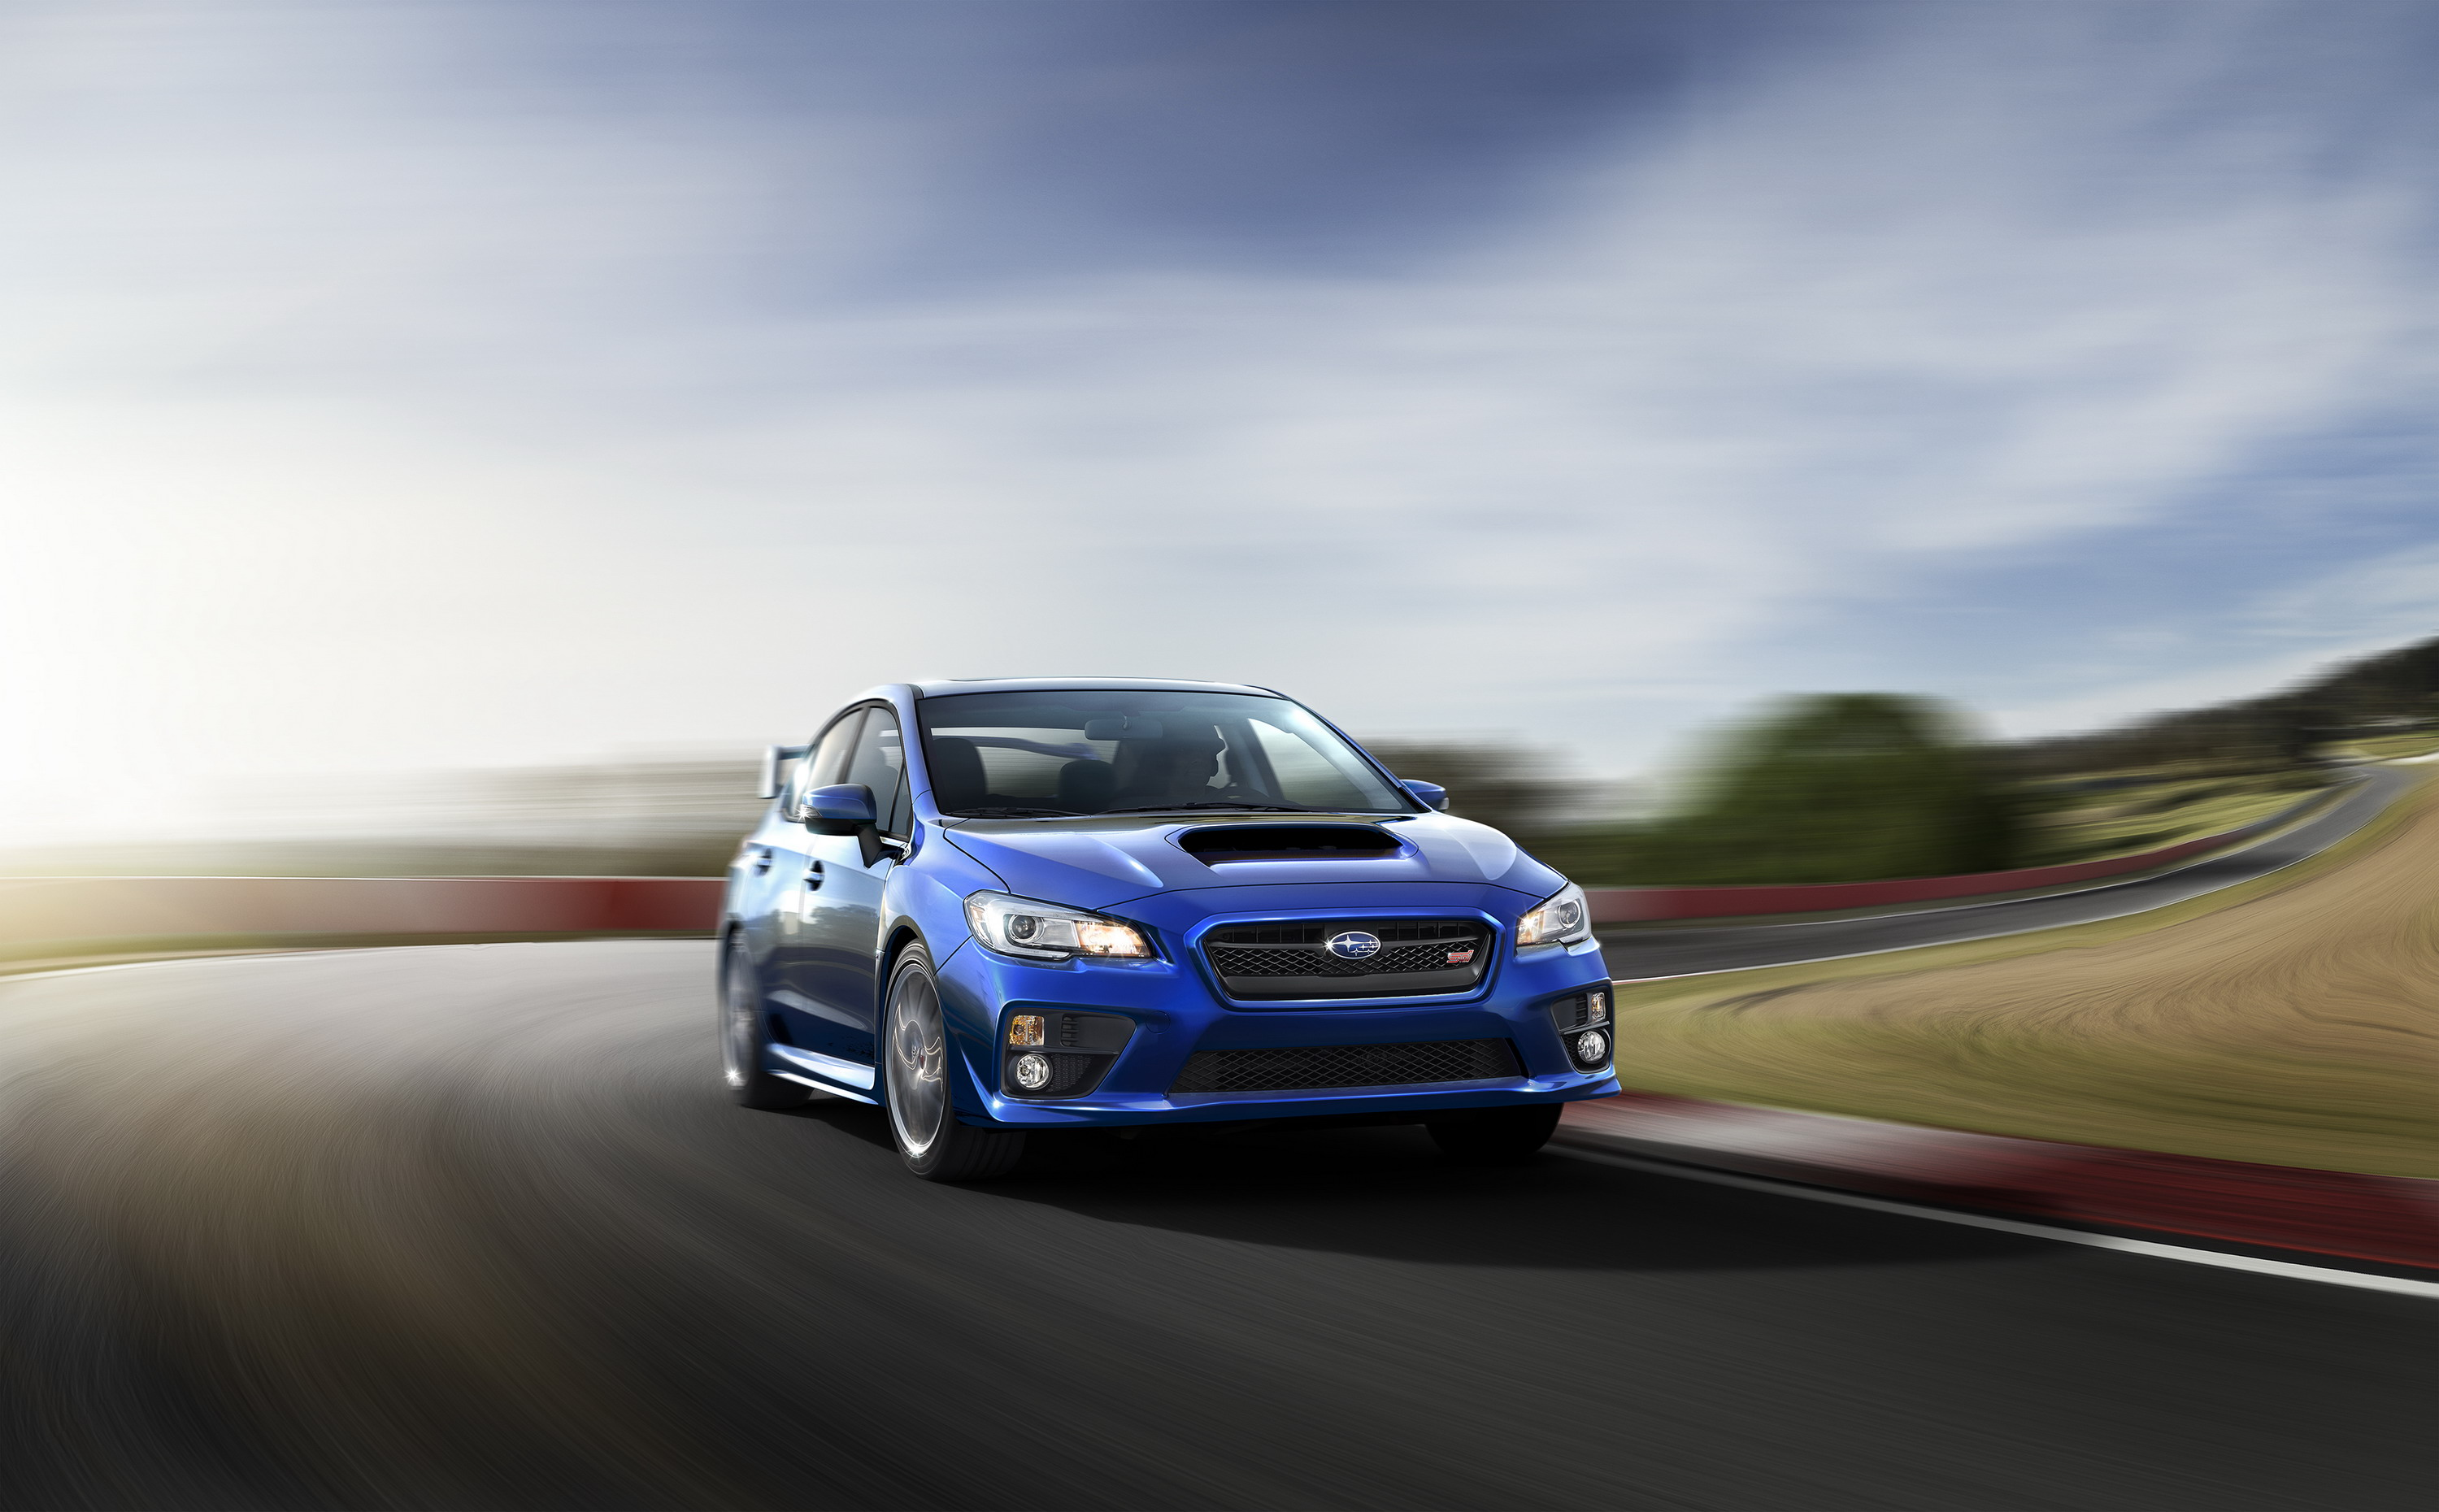 2015 subaru wrx sti launch edition review - top speed